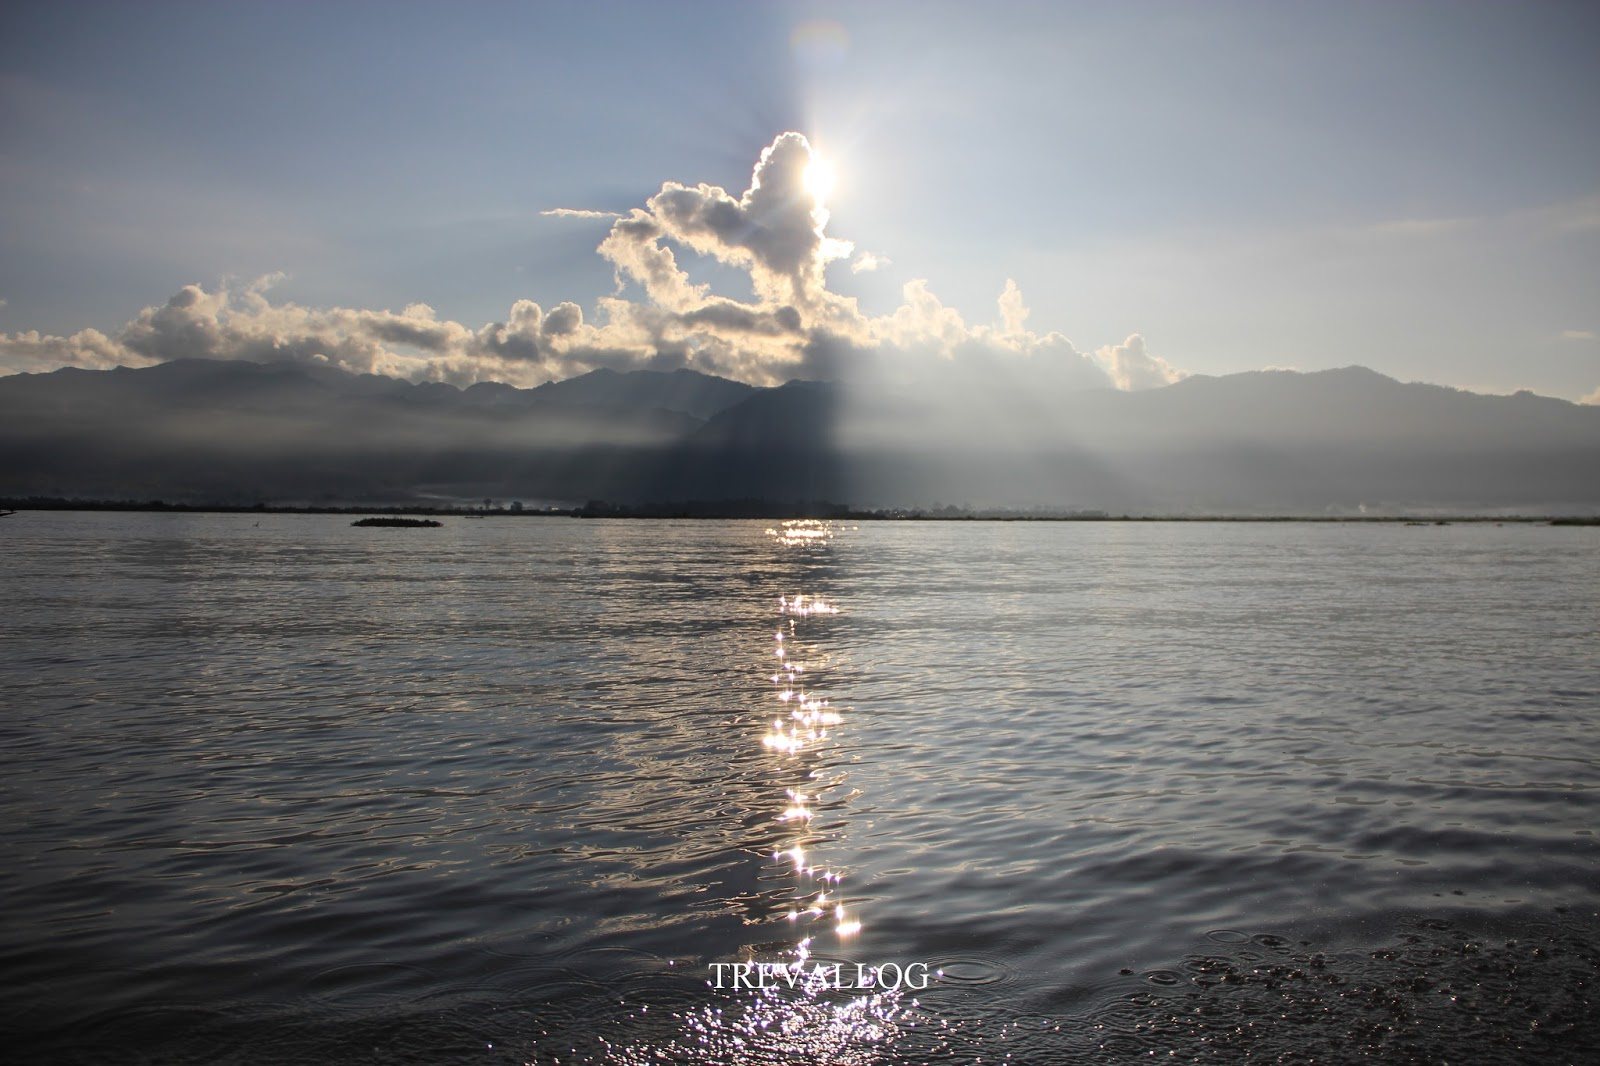 Morning sun in Inle Lake, Myanmar